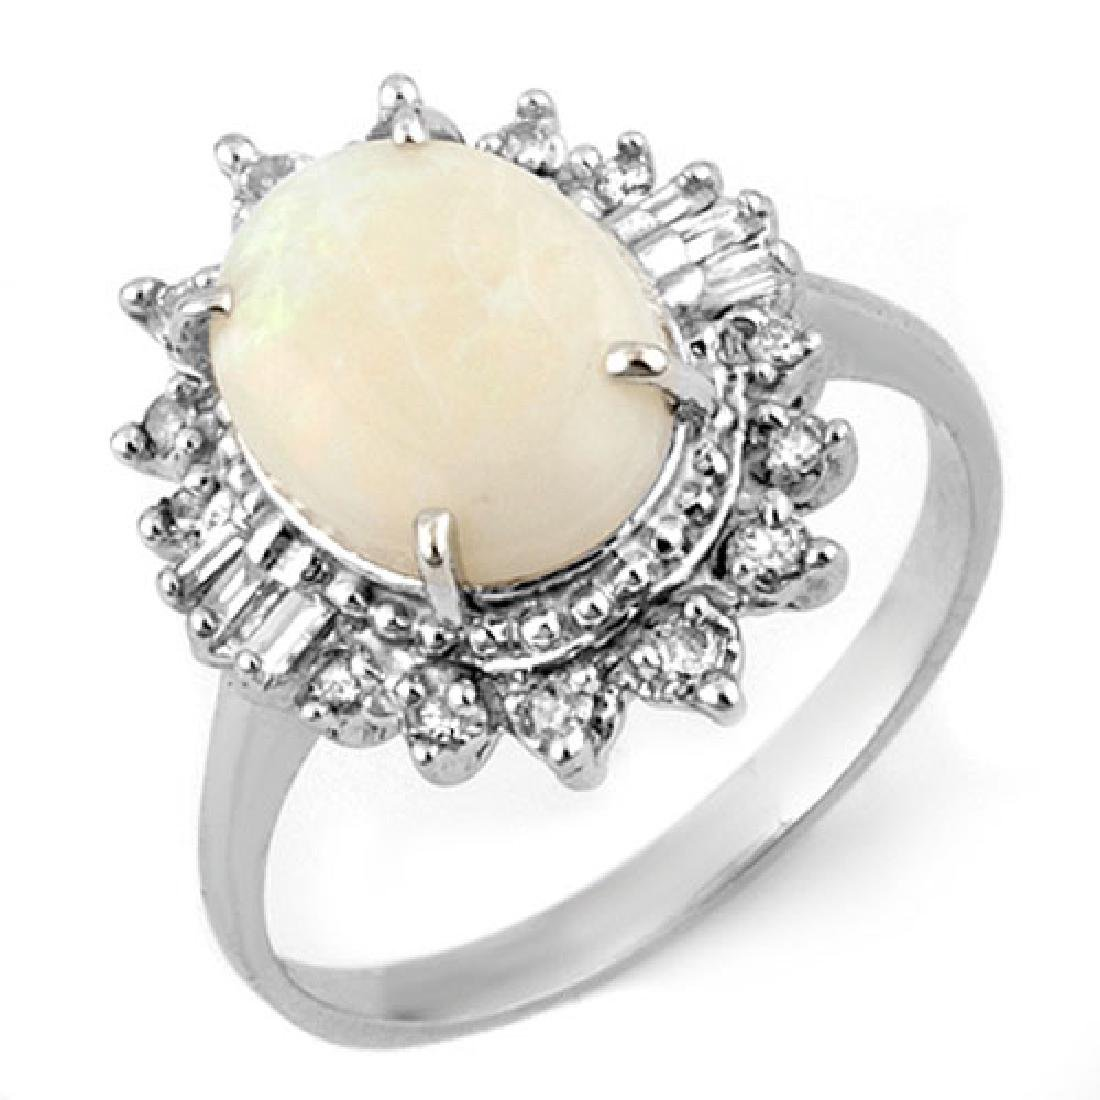 3.45 CTW Opal & Diamond Ring 10K White Gold